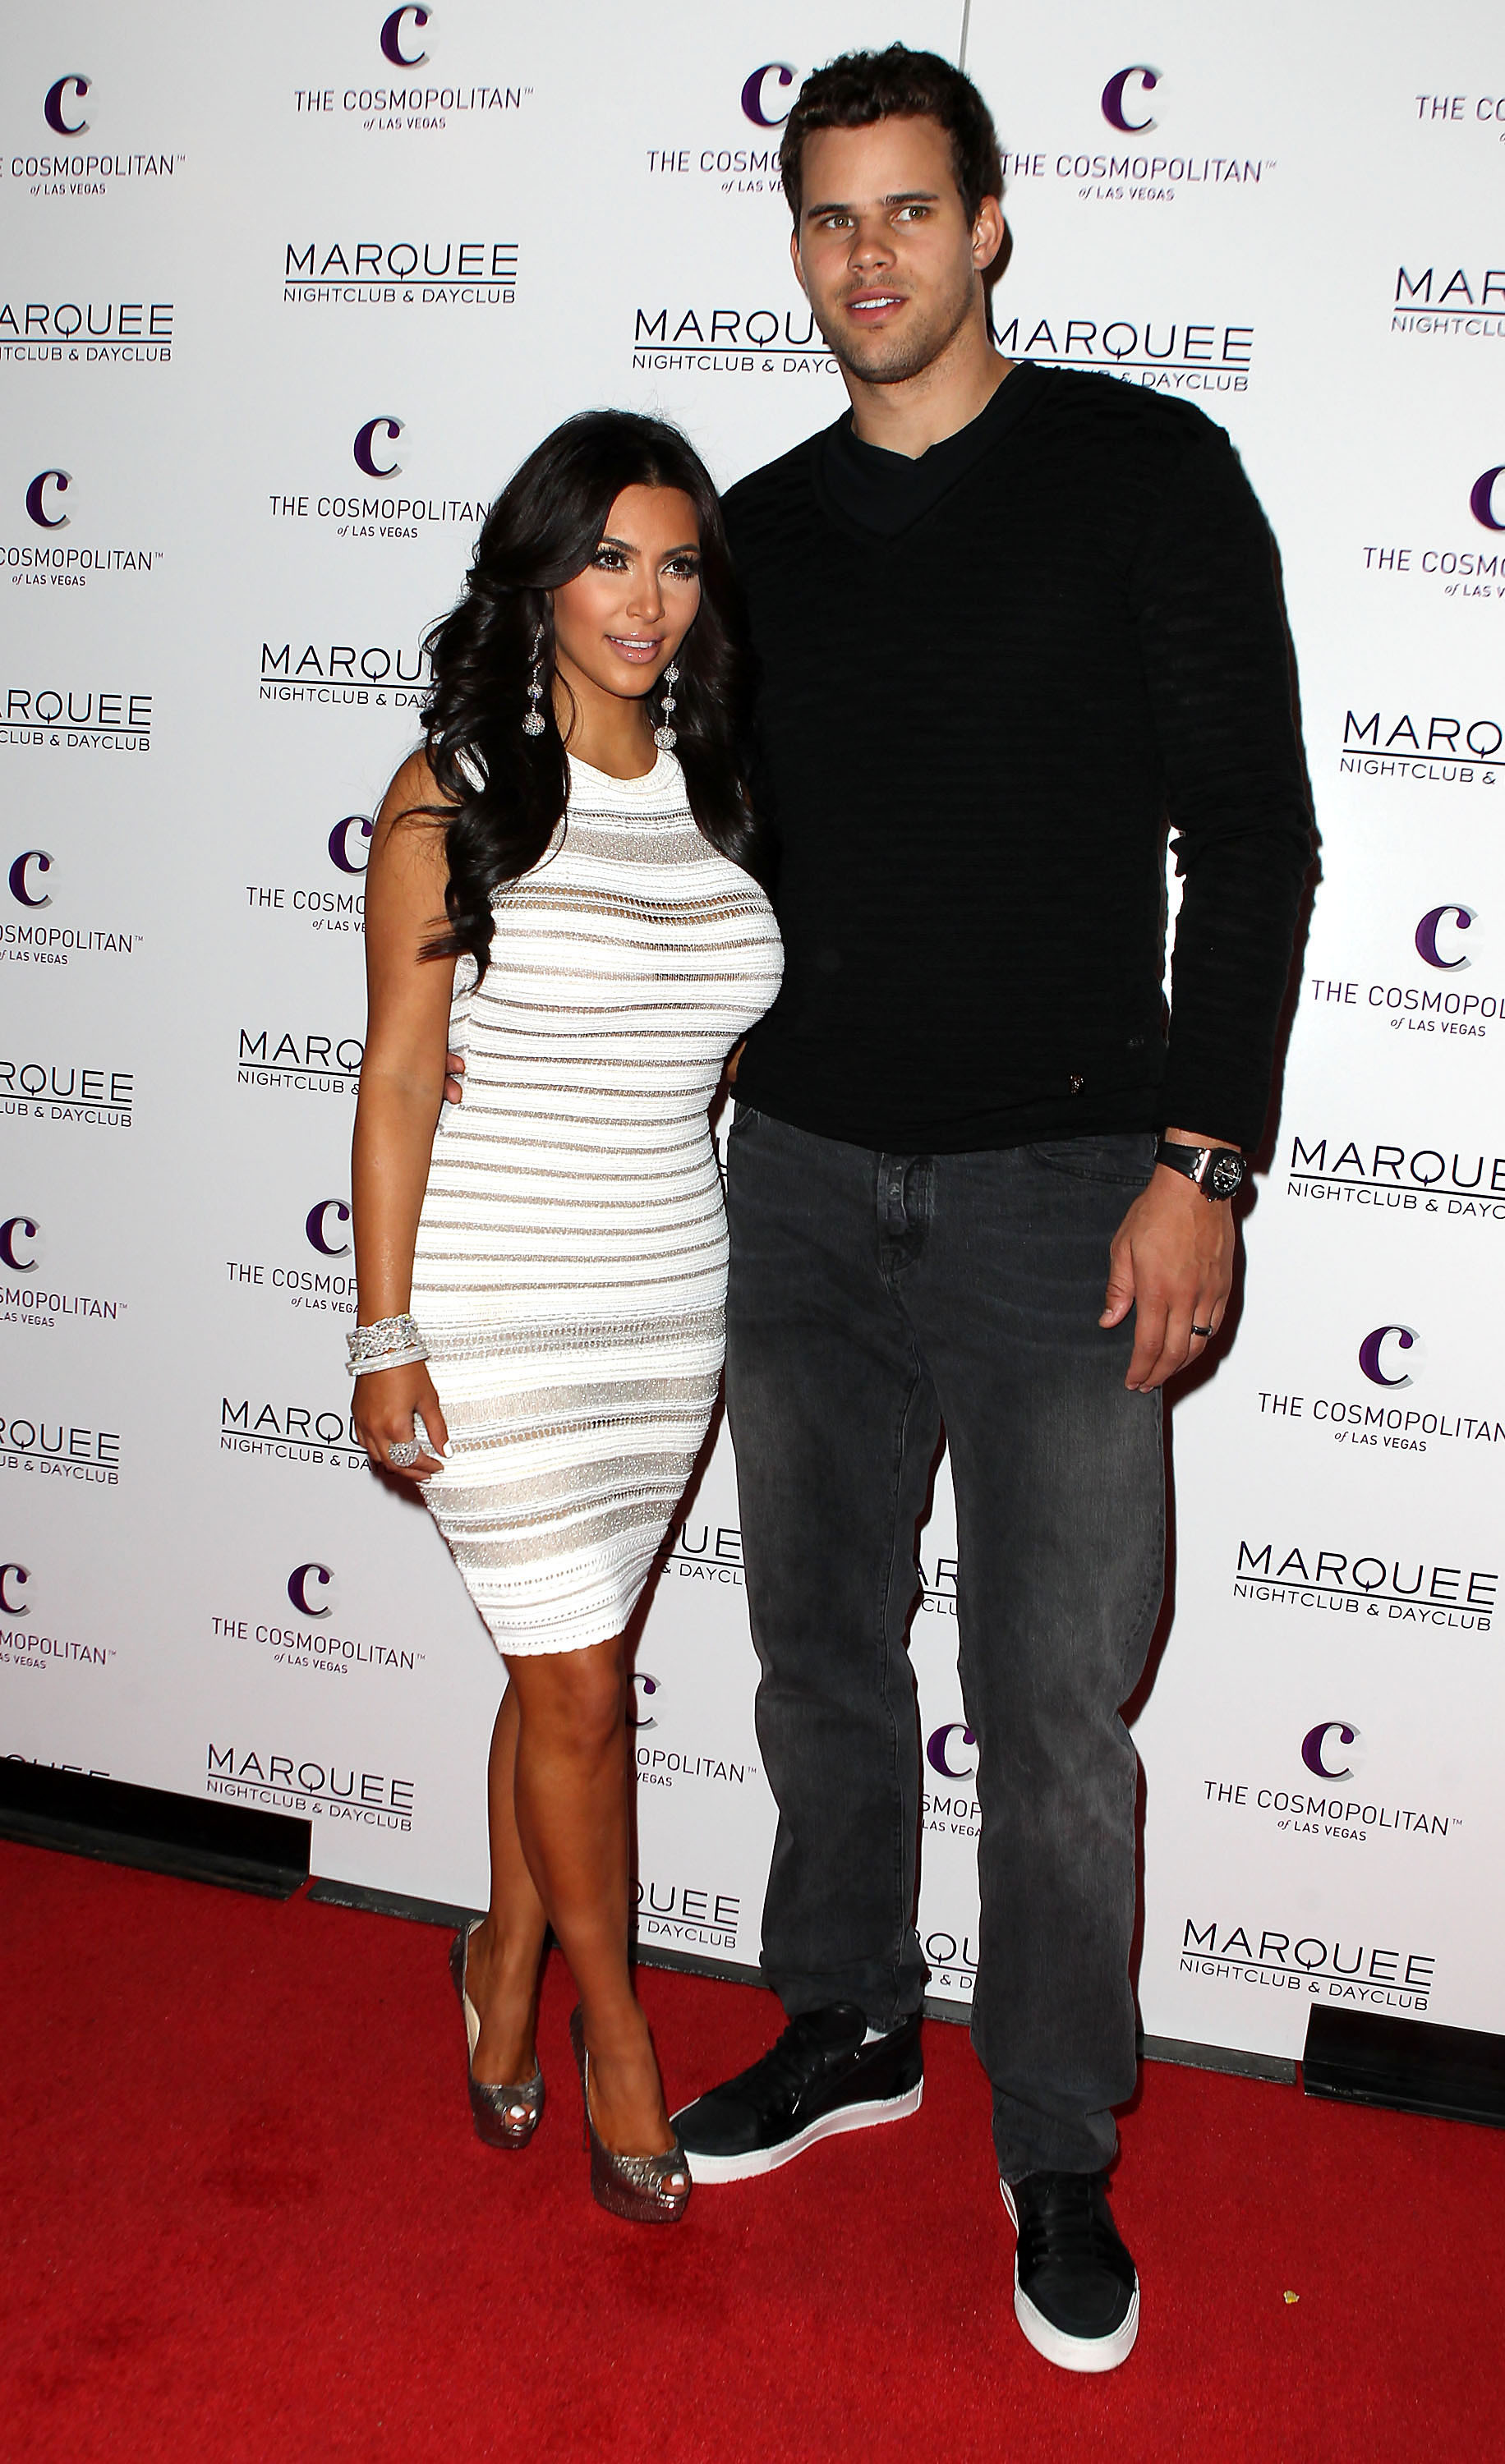 Kim Kardashian admits she almost backed out of marrying Kris Humphries